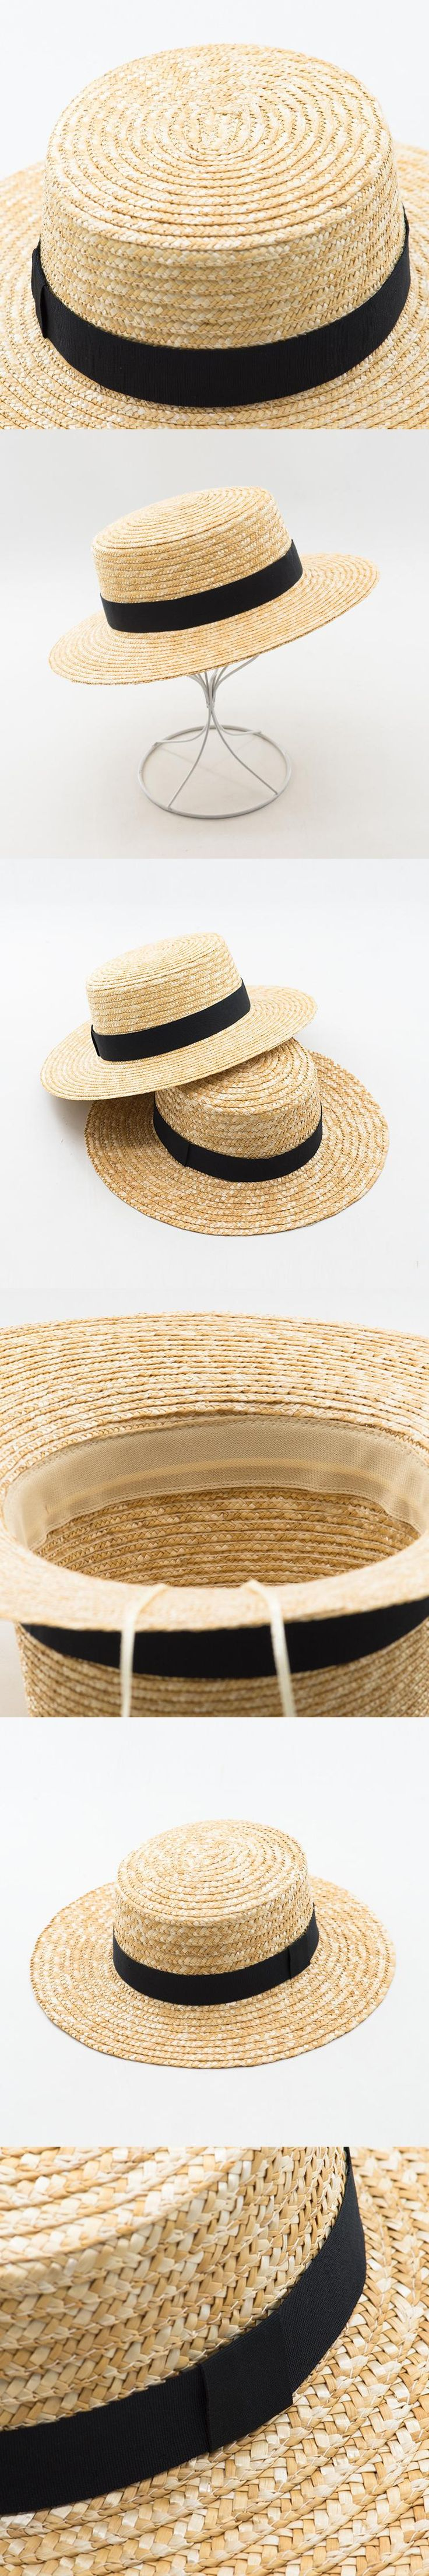 Muchique Boater Hats for Women Summer Sun Straw Hat with Wide Brim Beach Hats Girl 2017